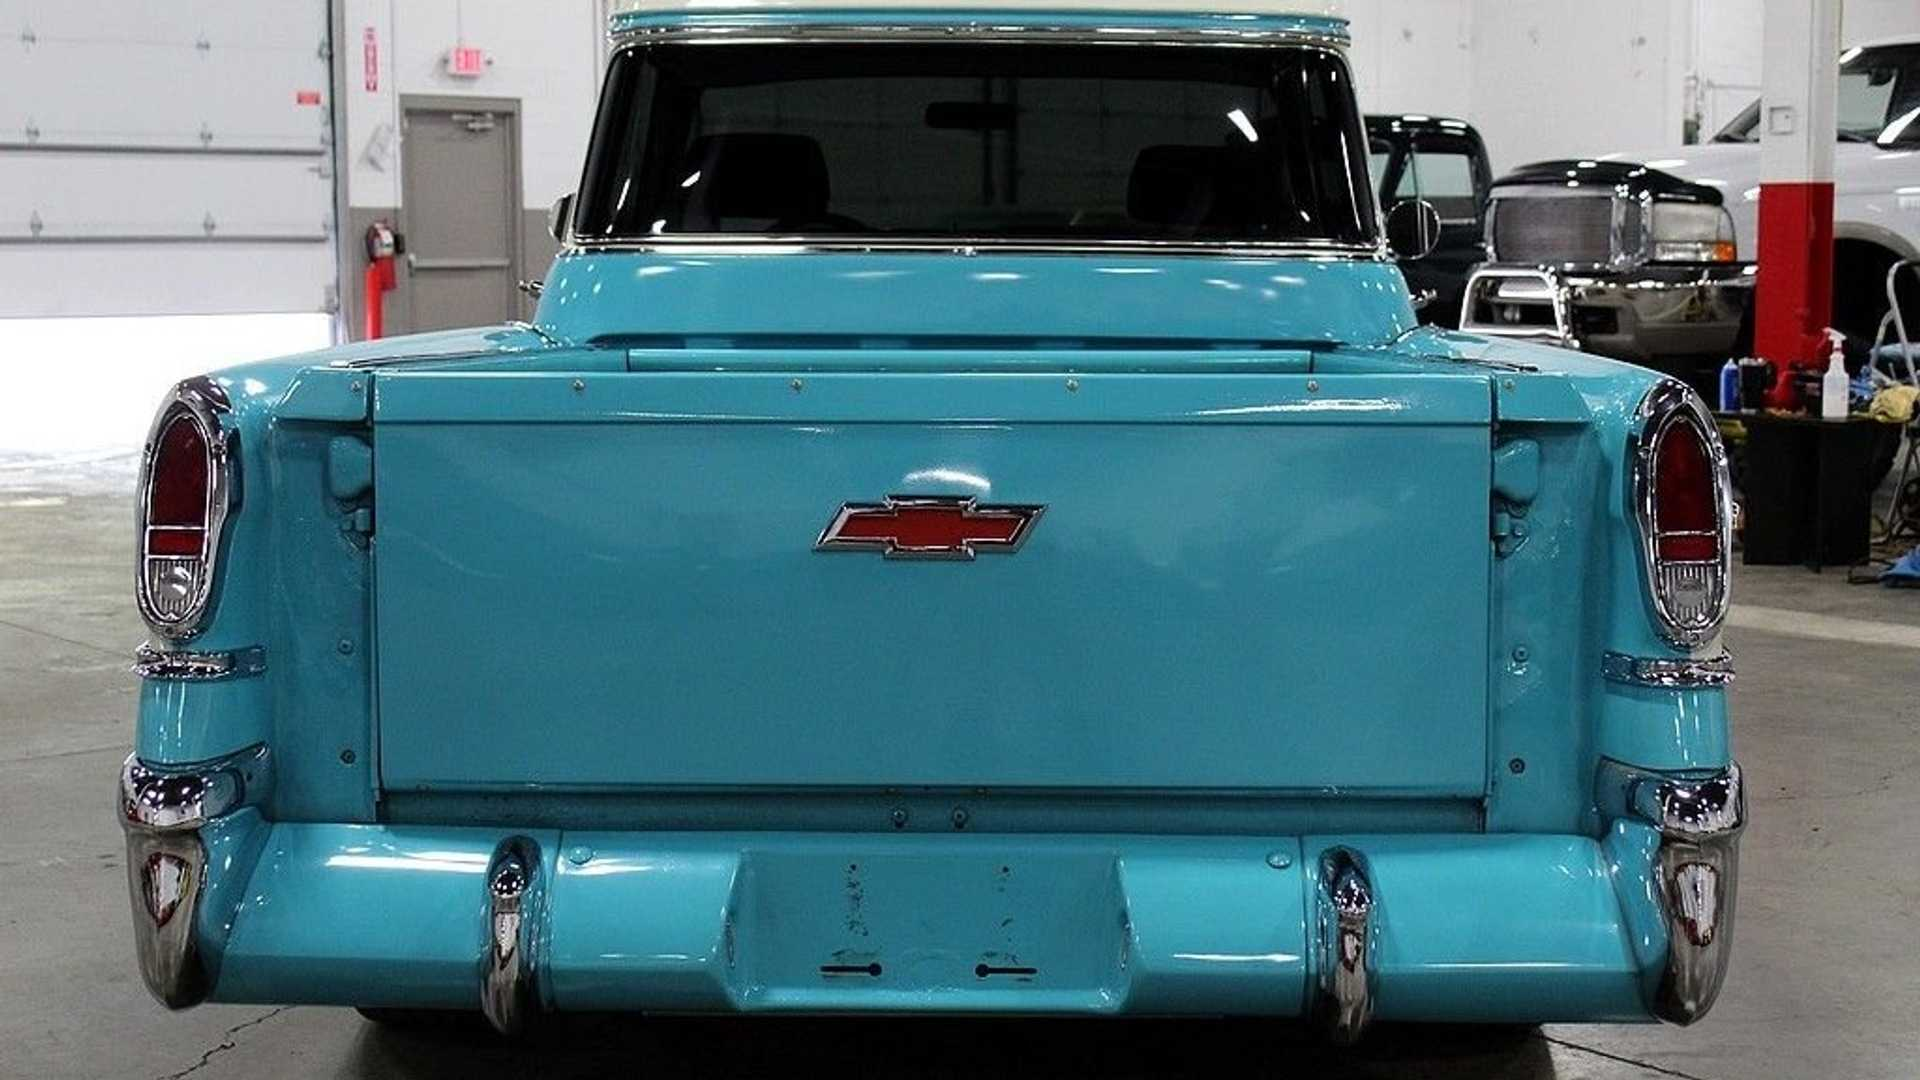 Drive Off In A Beautiful Turquoise 1958 Chevy Cameo Pickup